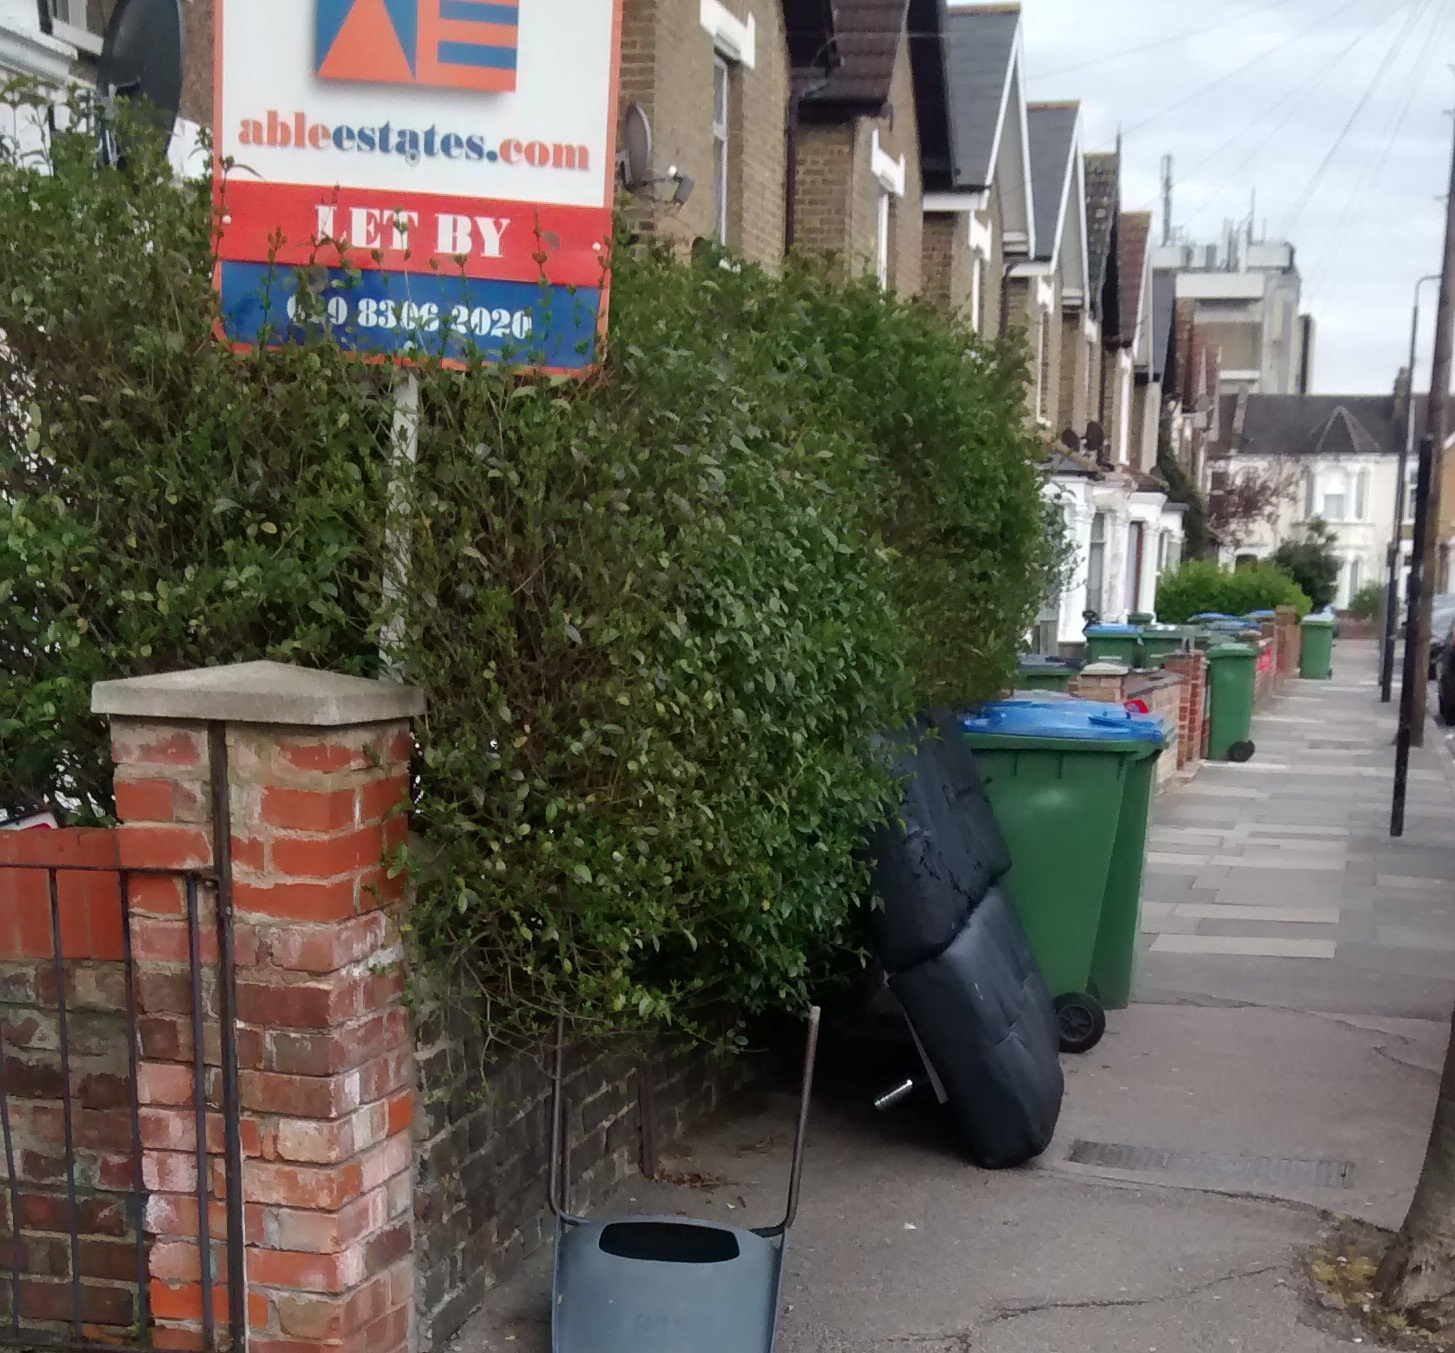 Landlord licensing commences in Greenwich borough